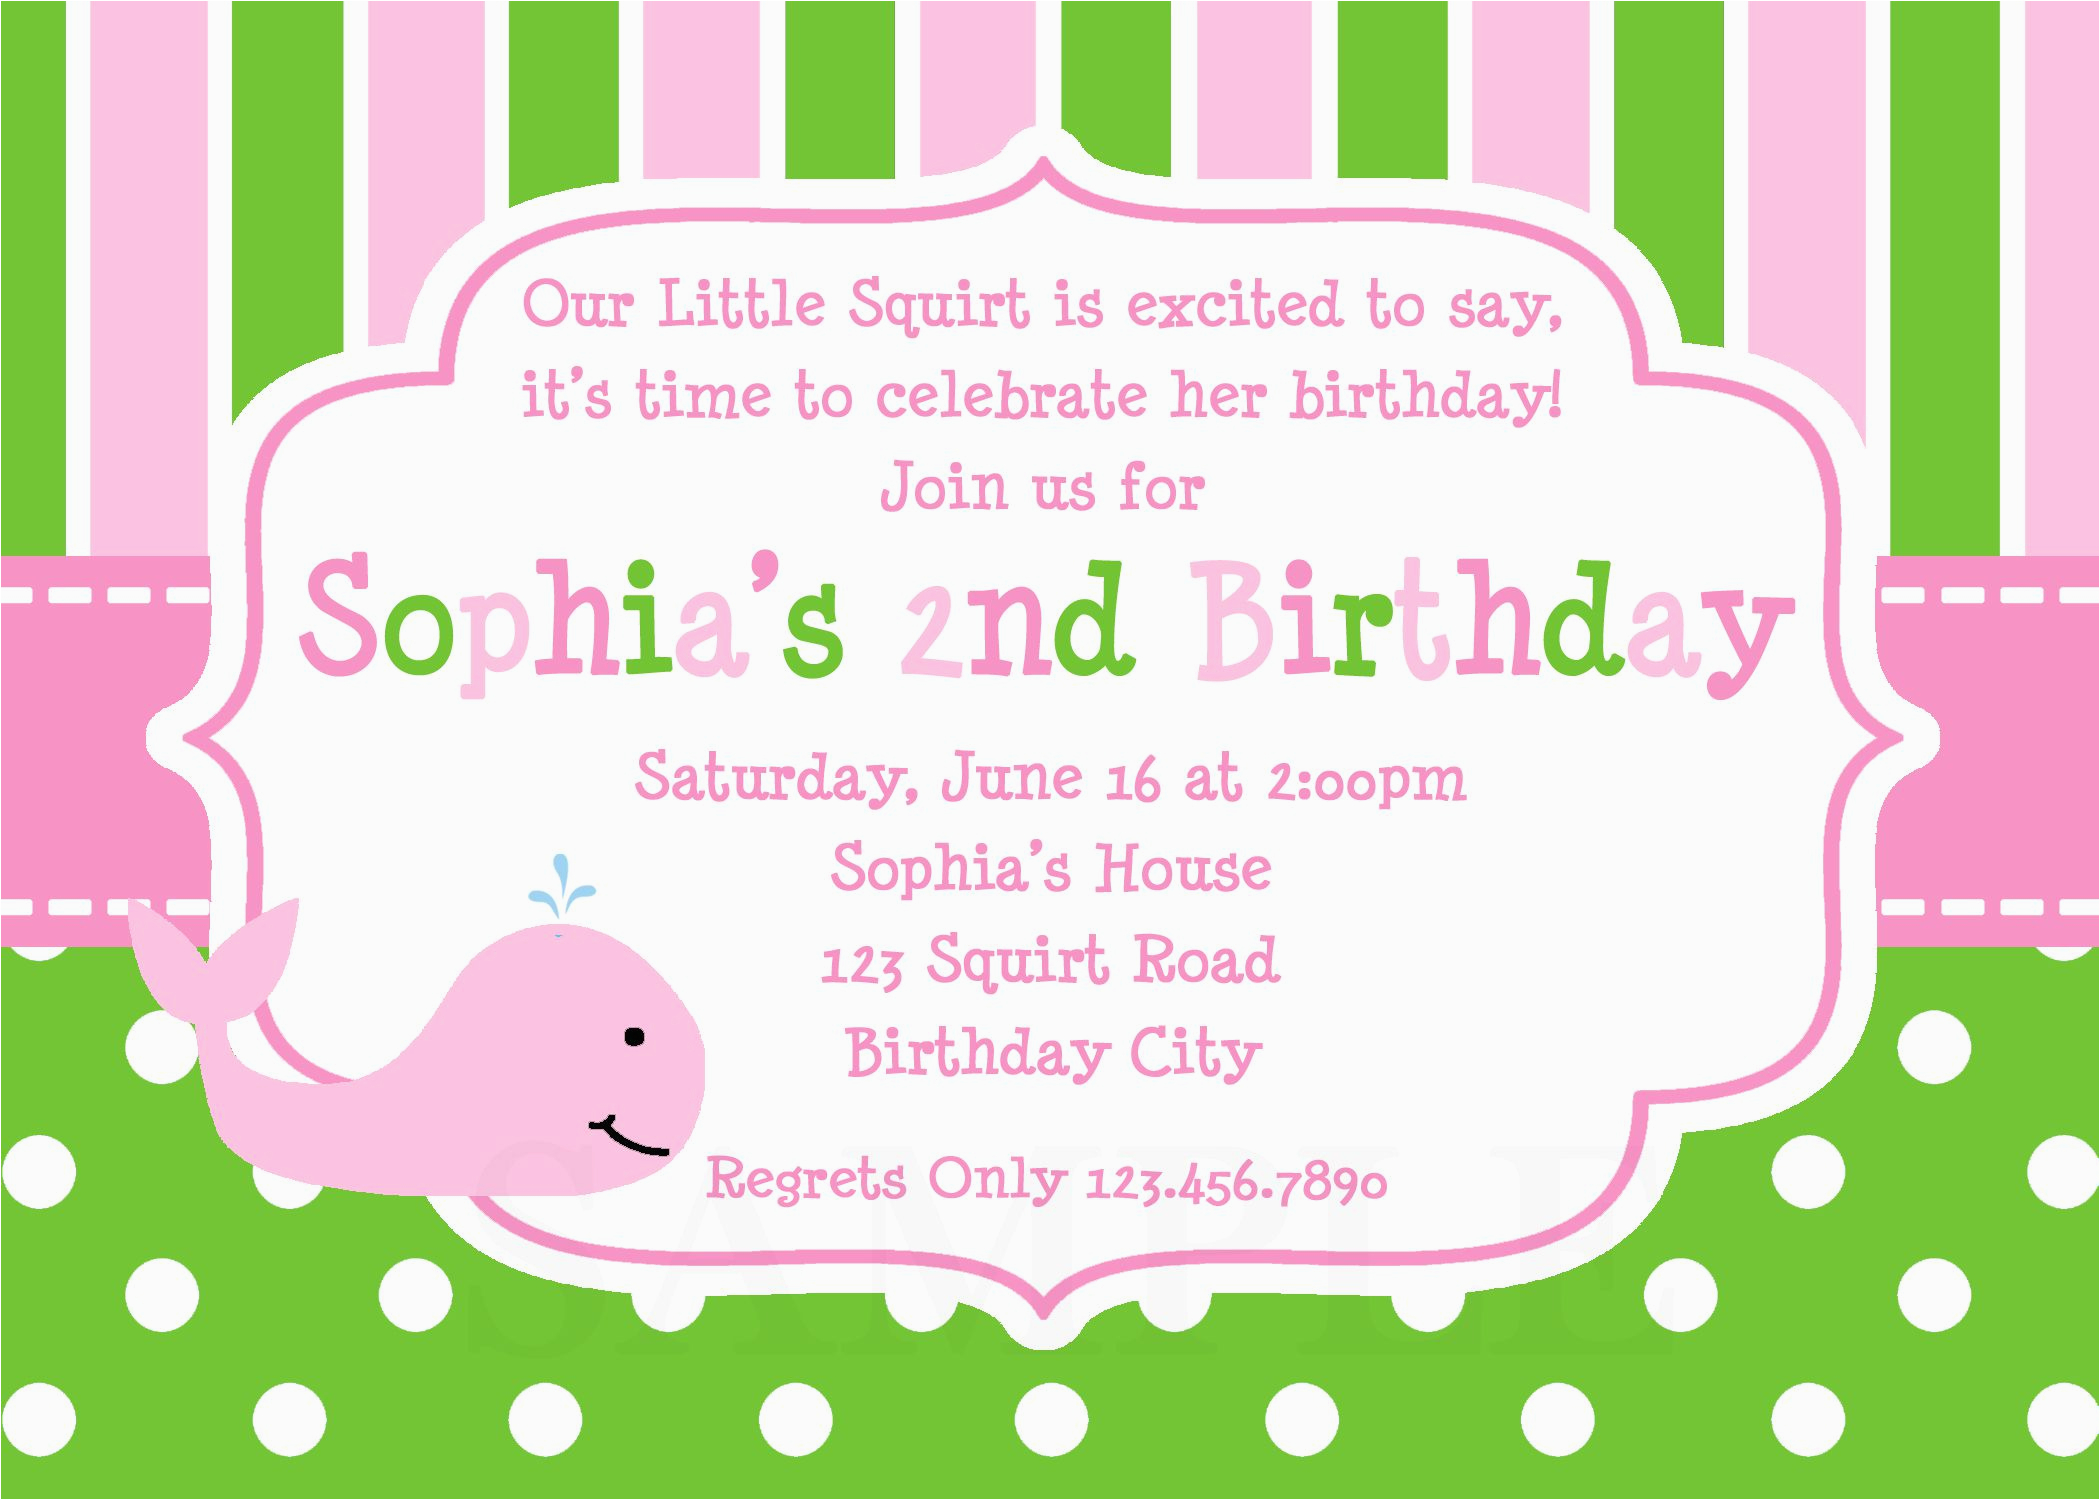 Invite To Birthday Party Wording 21 Kids Invitation That We Can Make